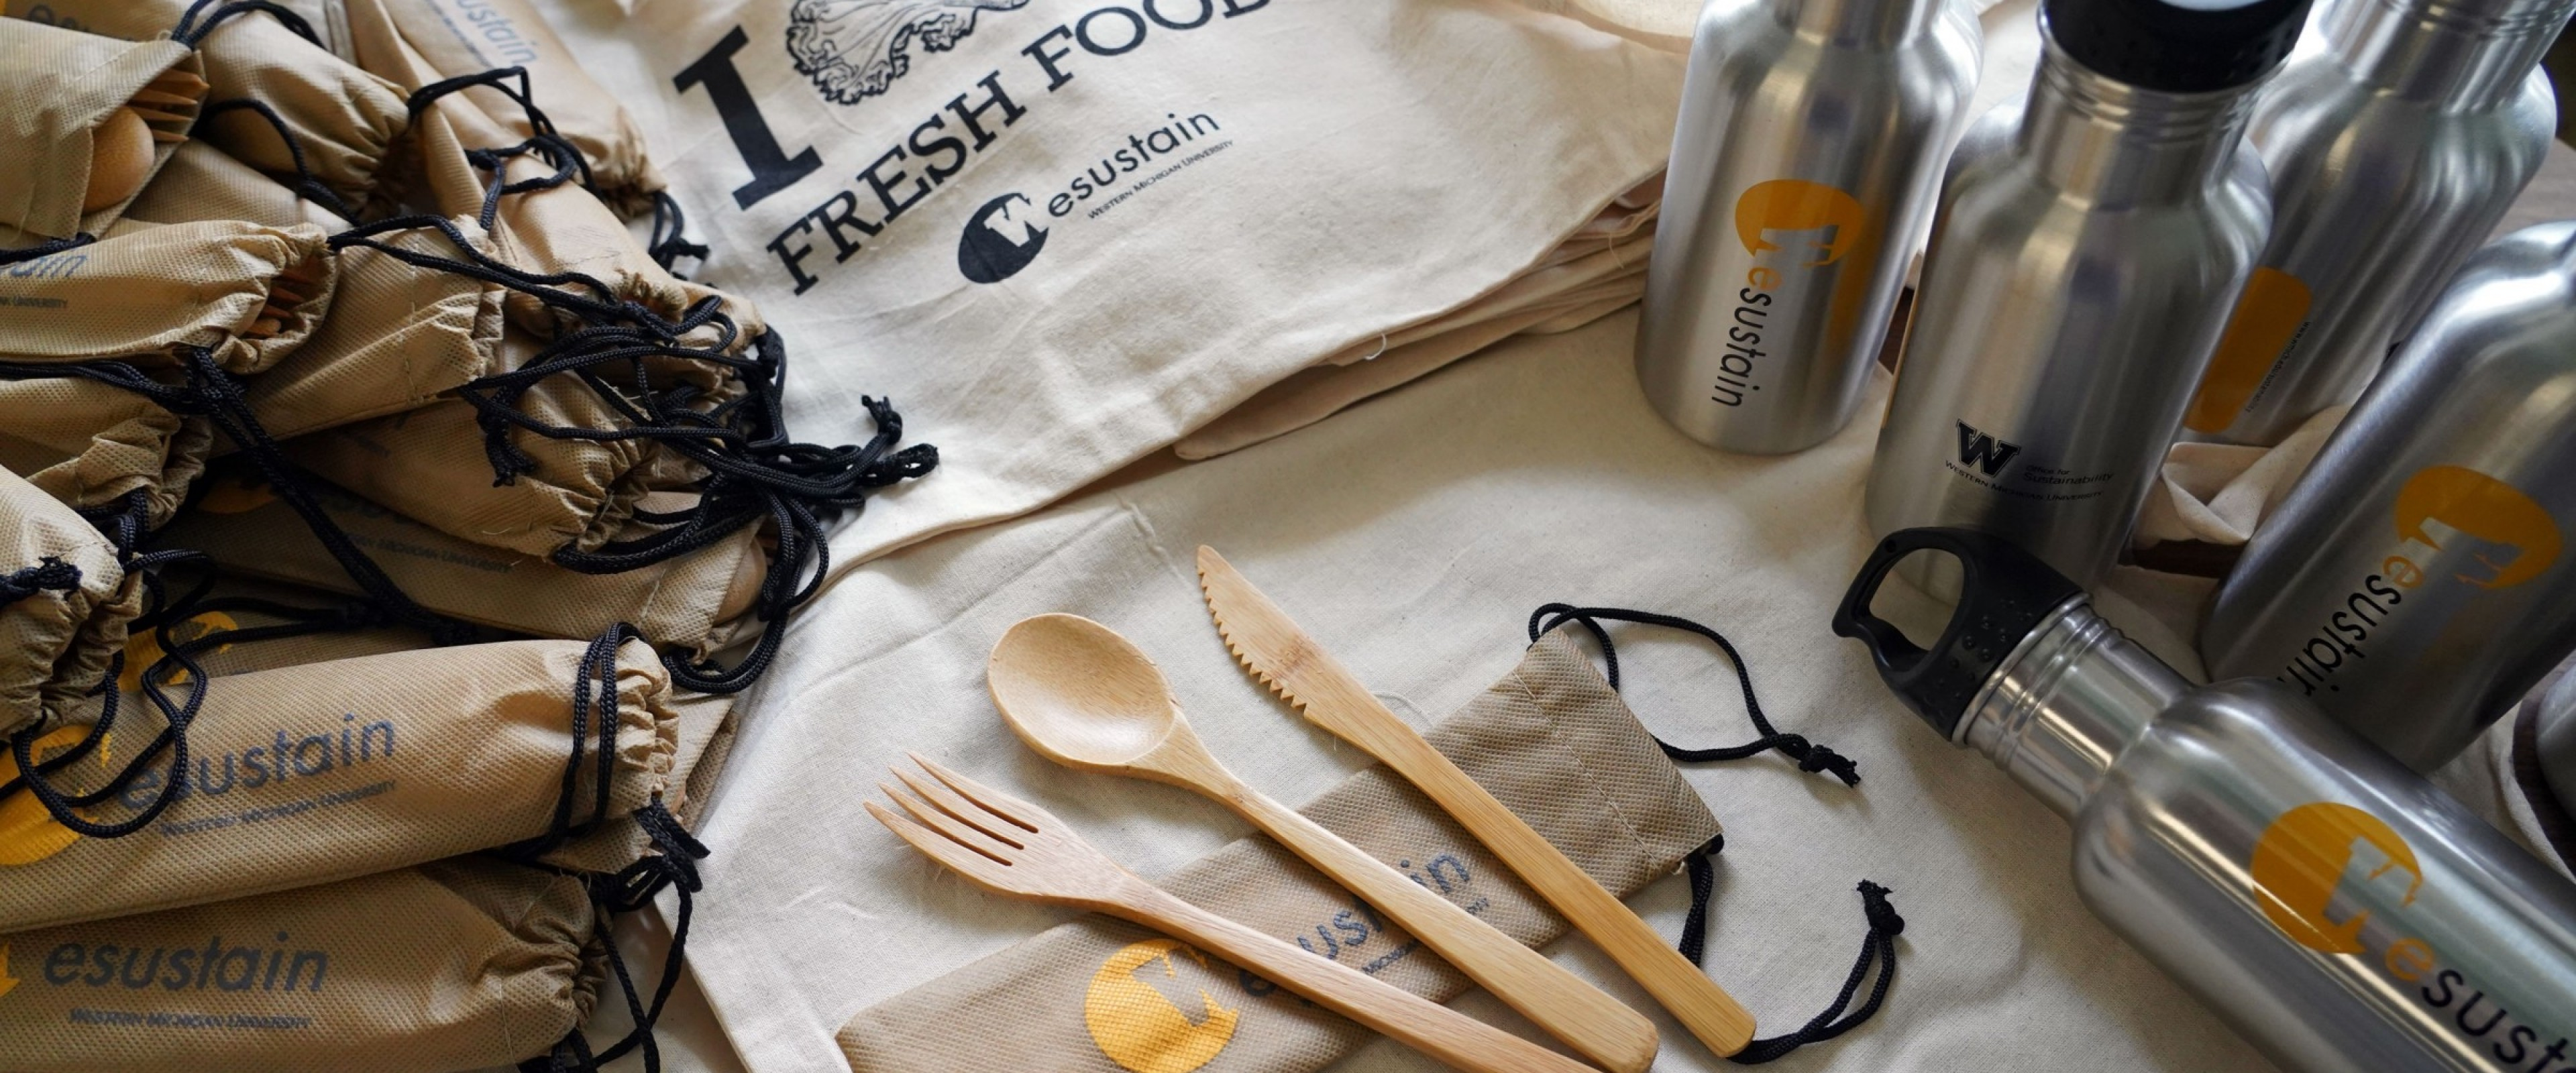 A recyclable bag is the backdrop for bamboo eating utensils and a metal water bottle